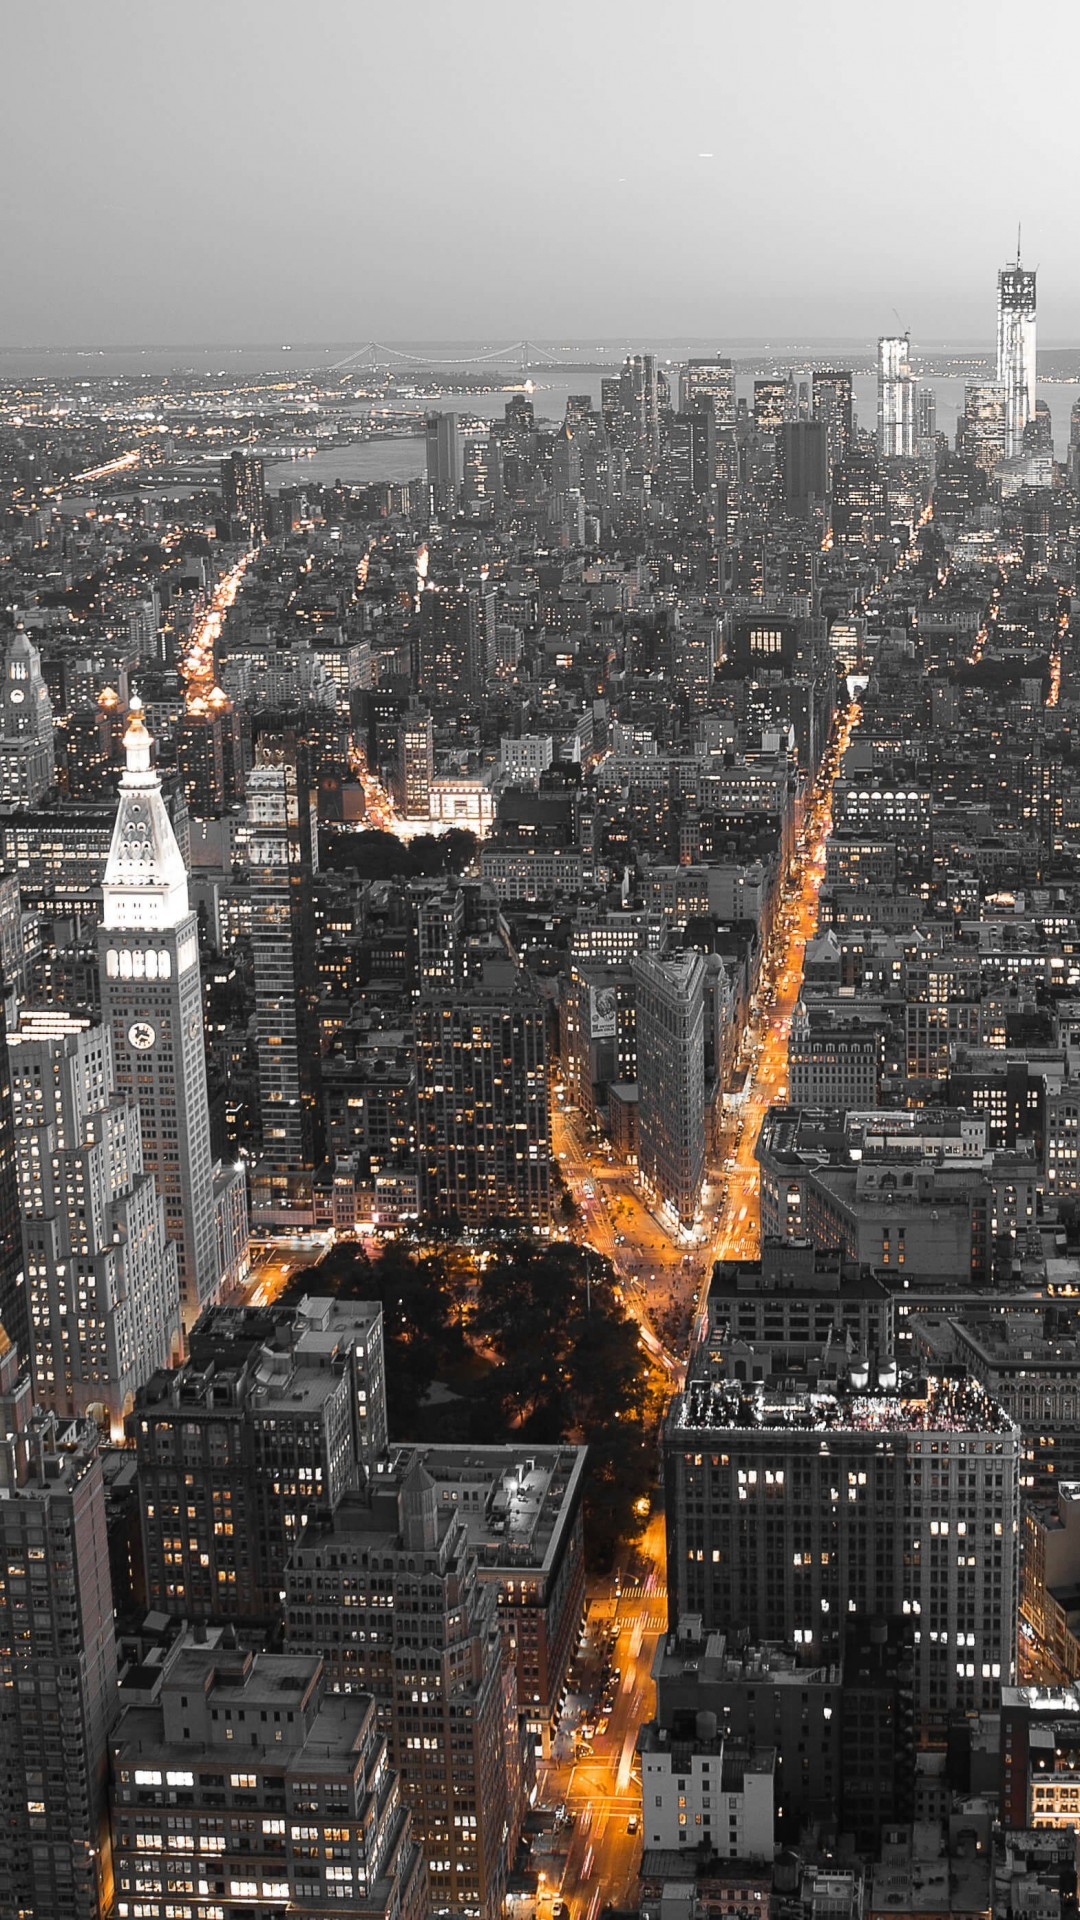 New York City by Night Wallpaper for SAMSUNG Galaxy S4